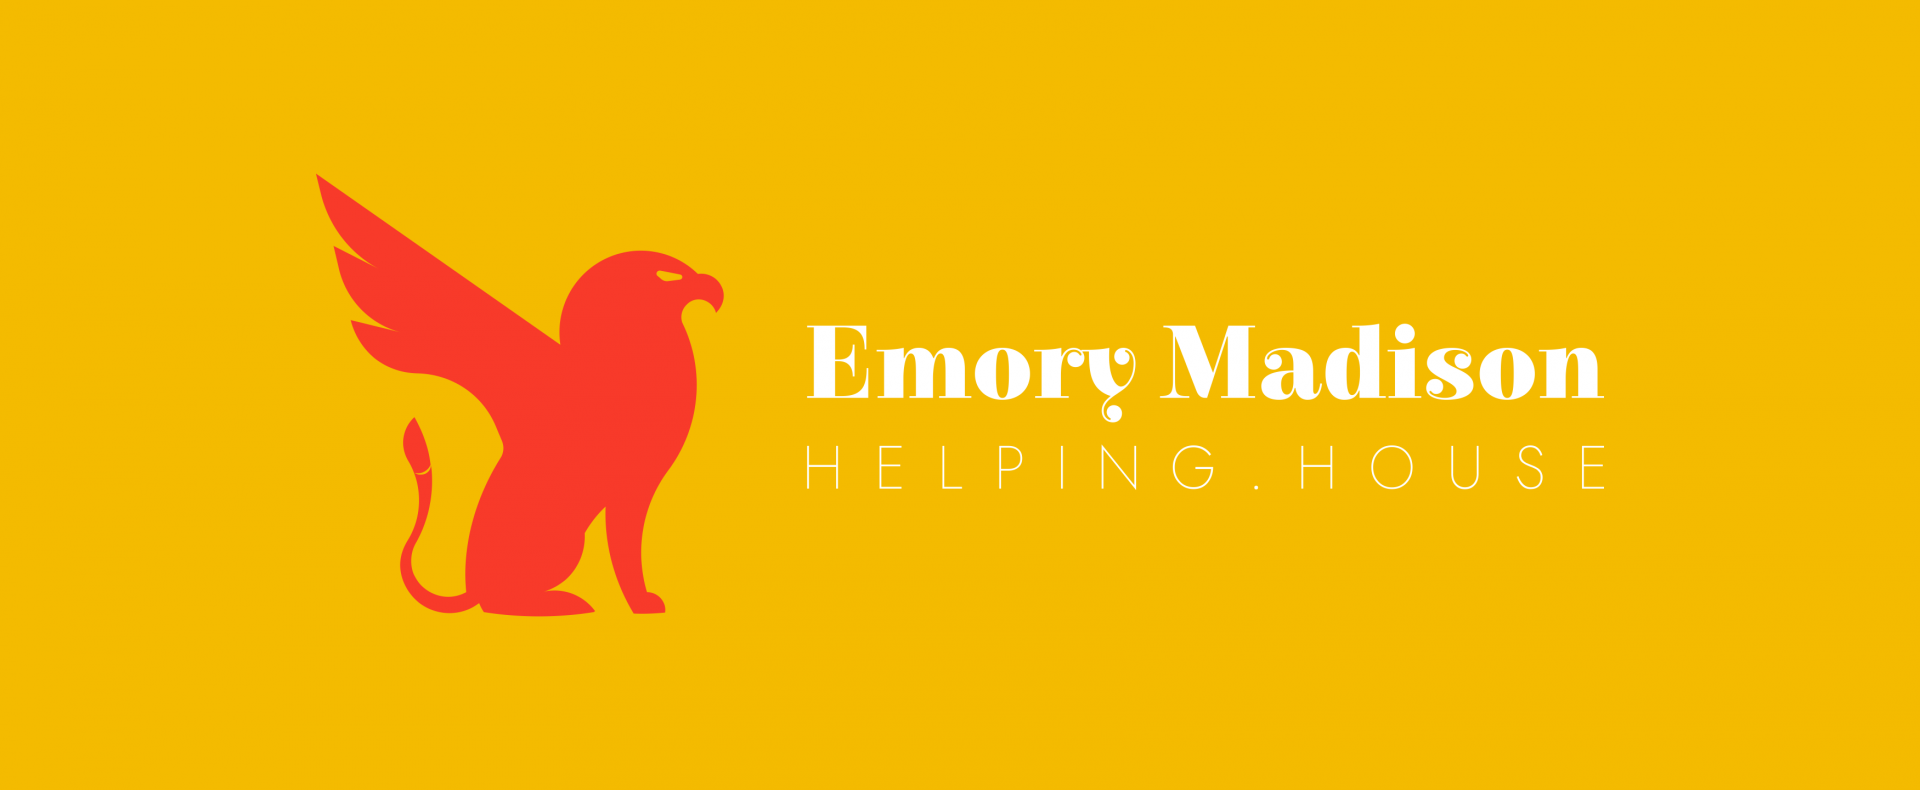 Emory Madison  logo